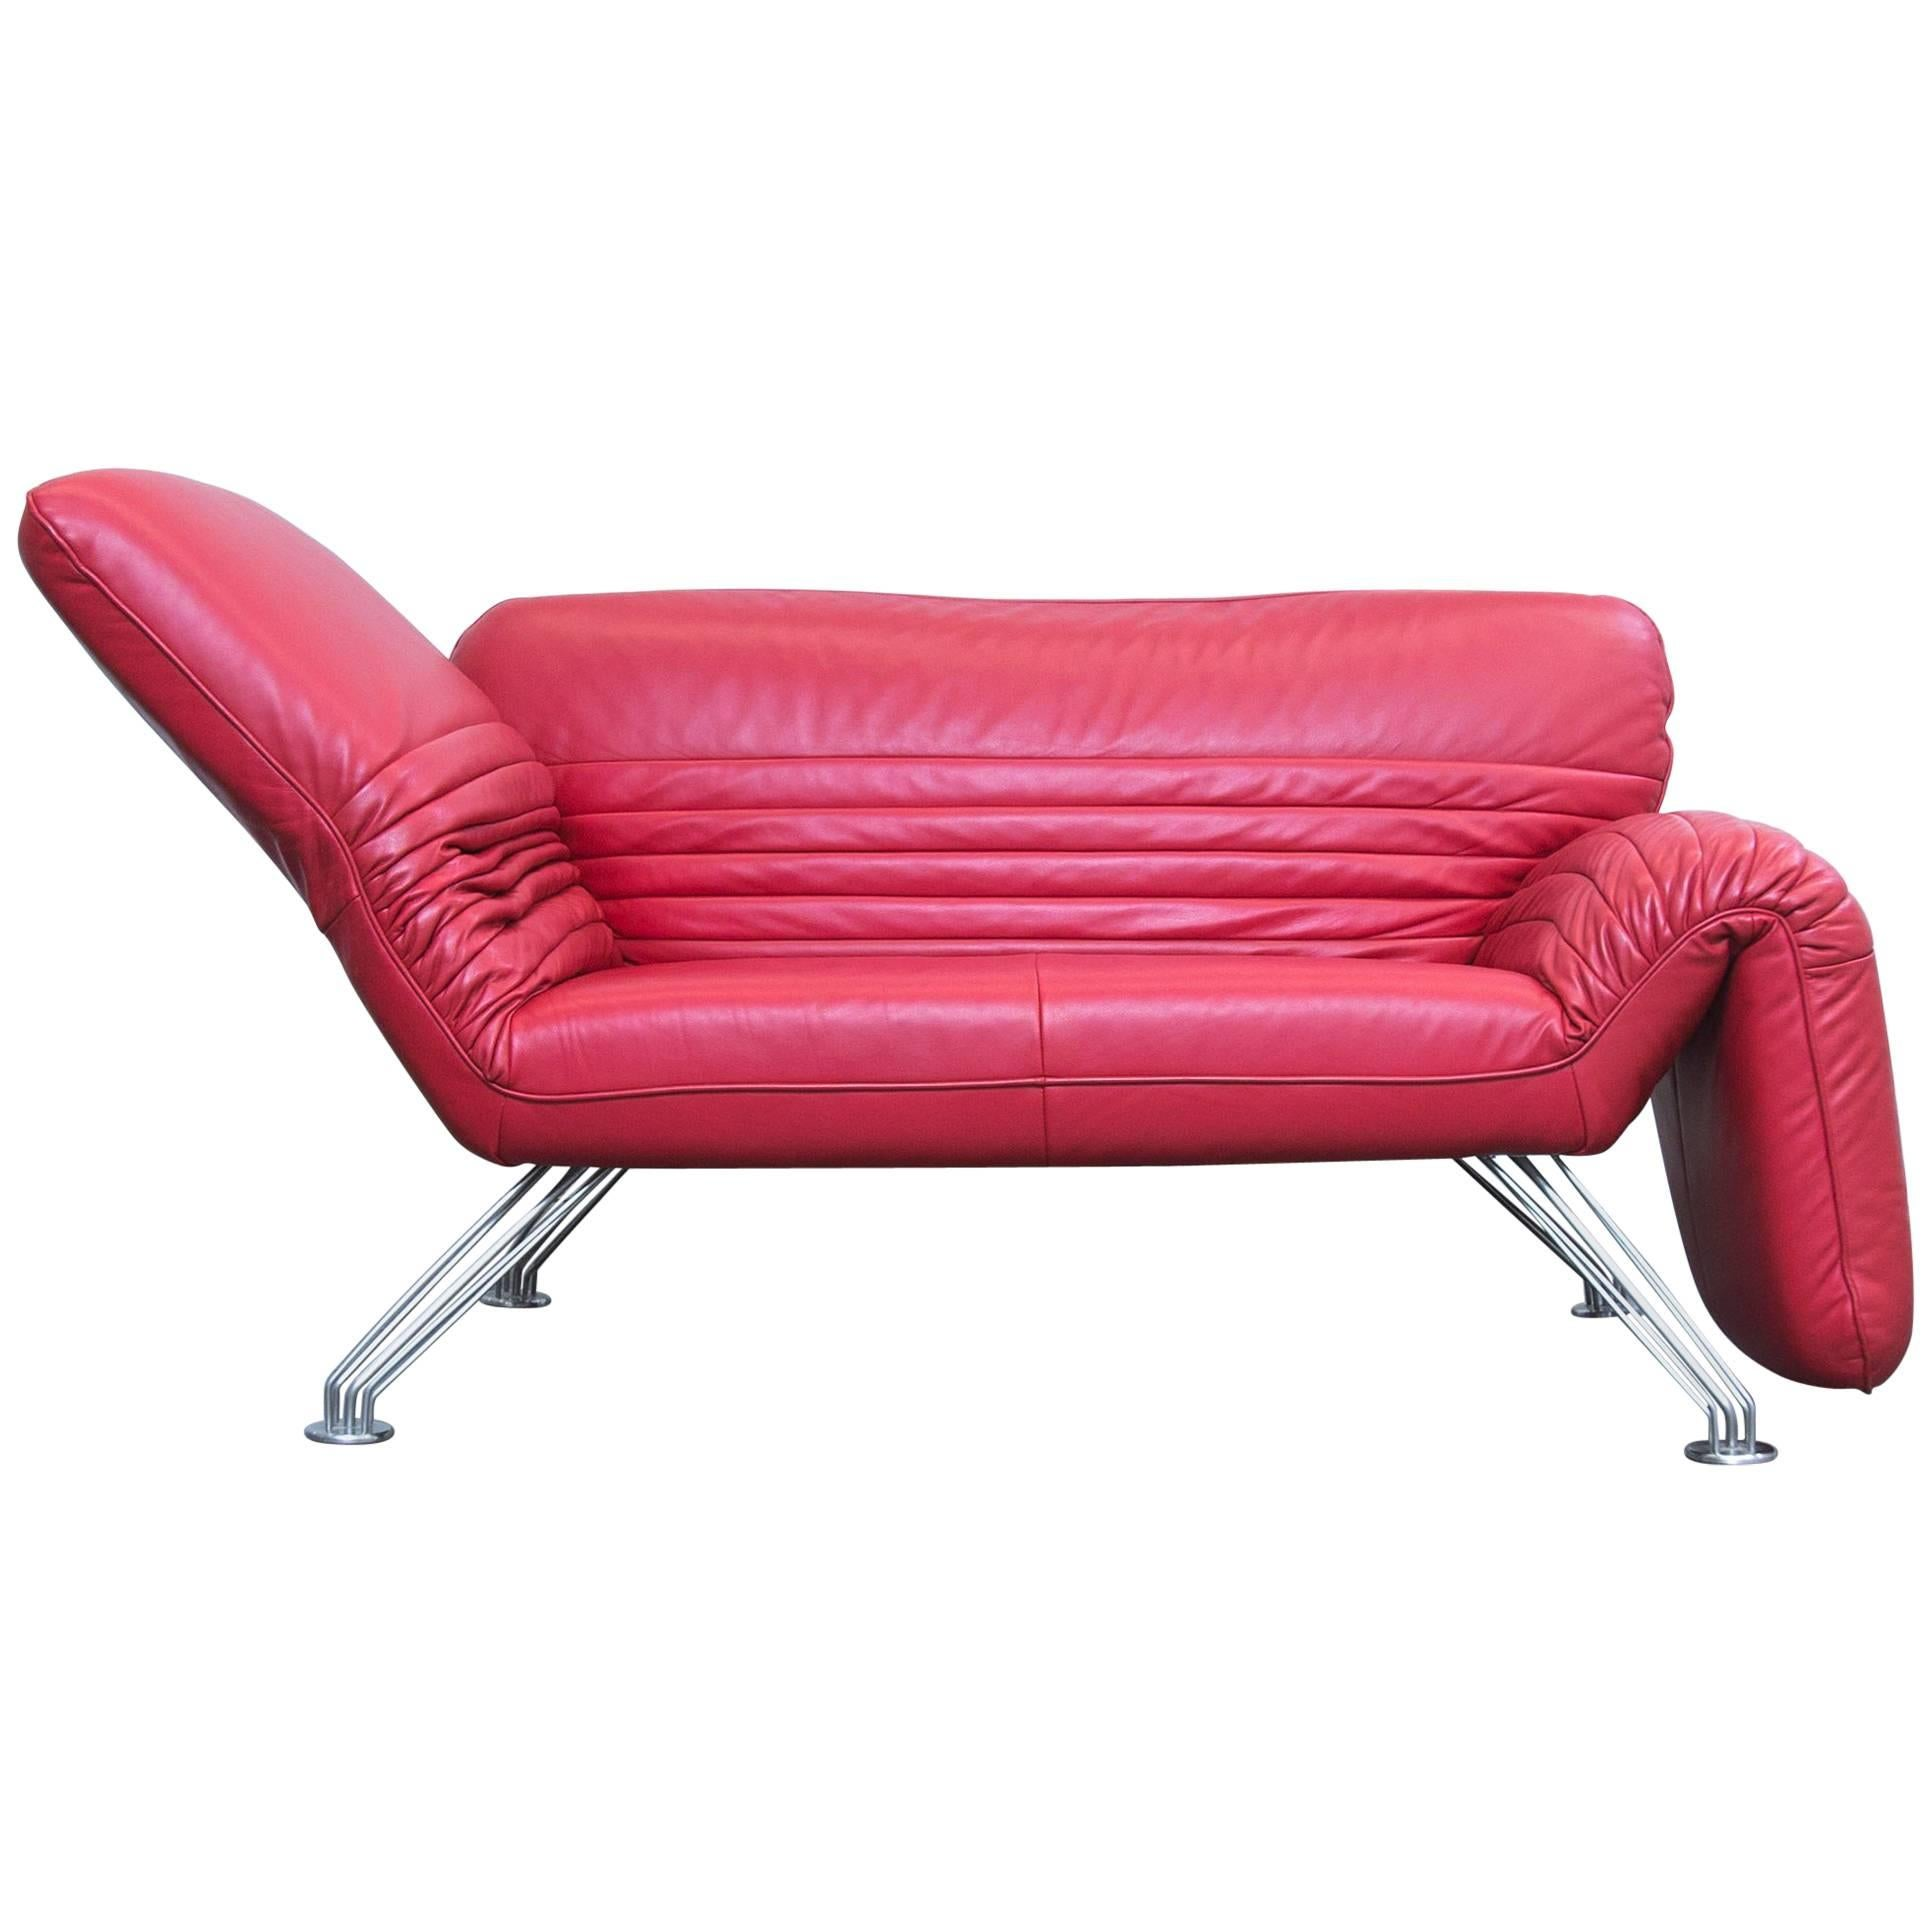 De Sede DS 142 Designer Sofa Red Leather Two Seat Couch Function Modern